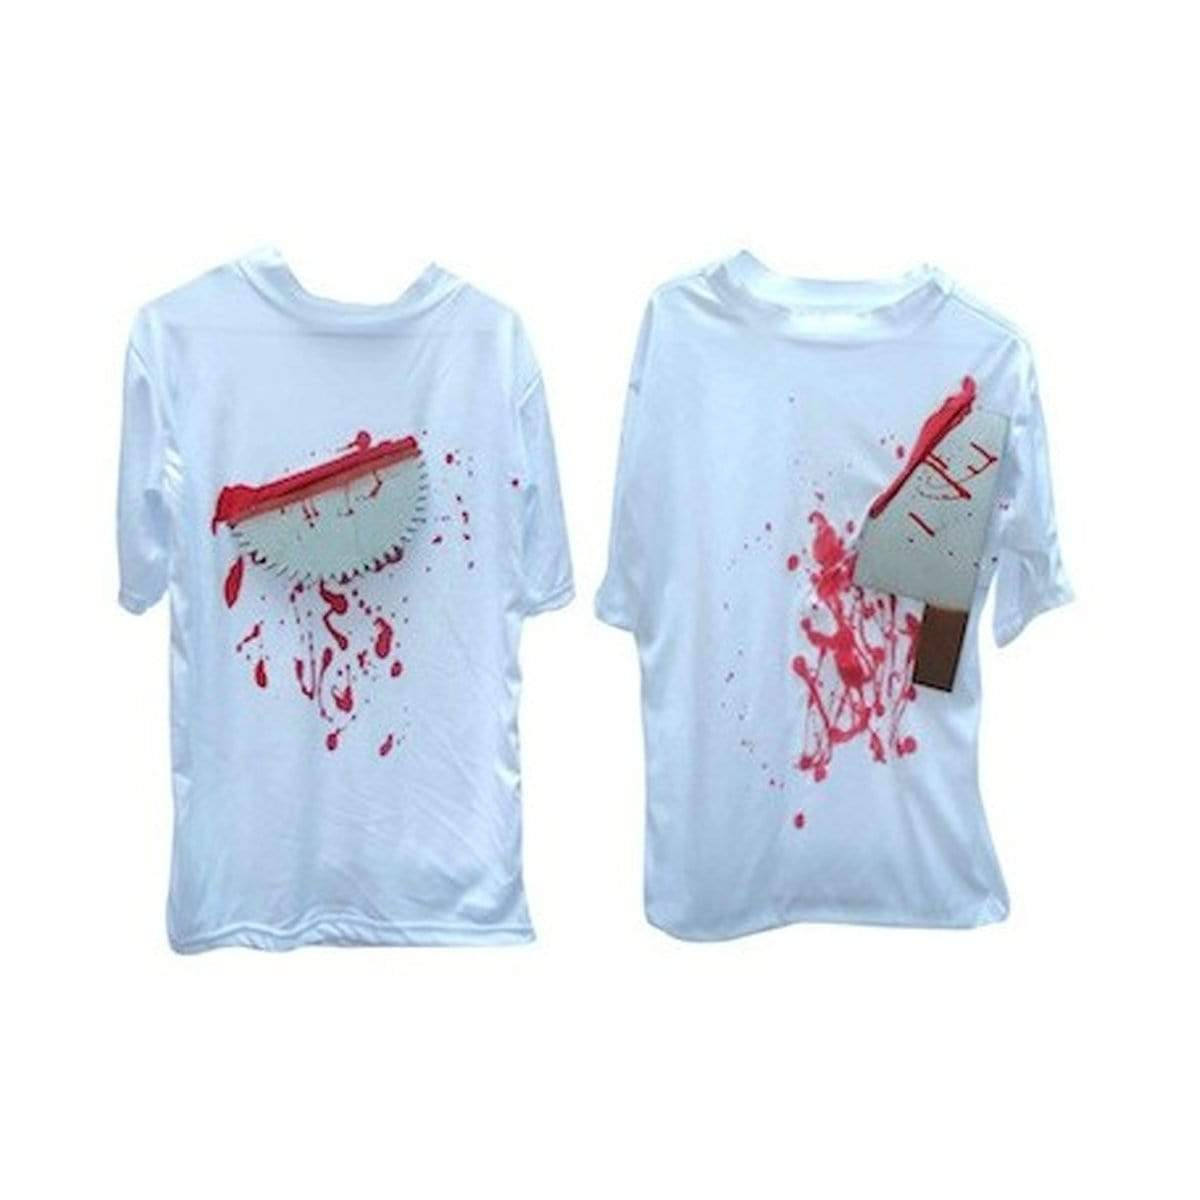 HALLOWEEN 3D T-SHIRT W/WEAPON ASST - Christmas World